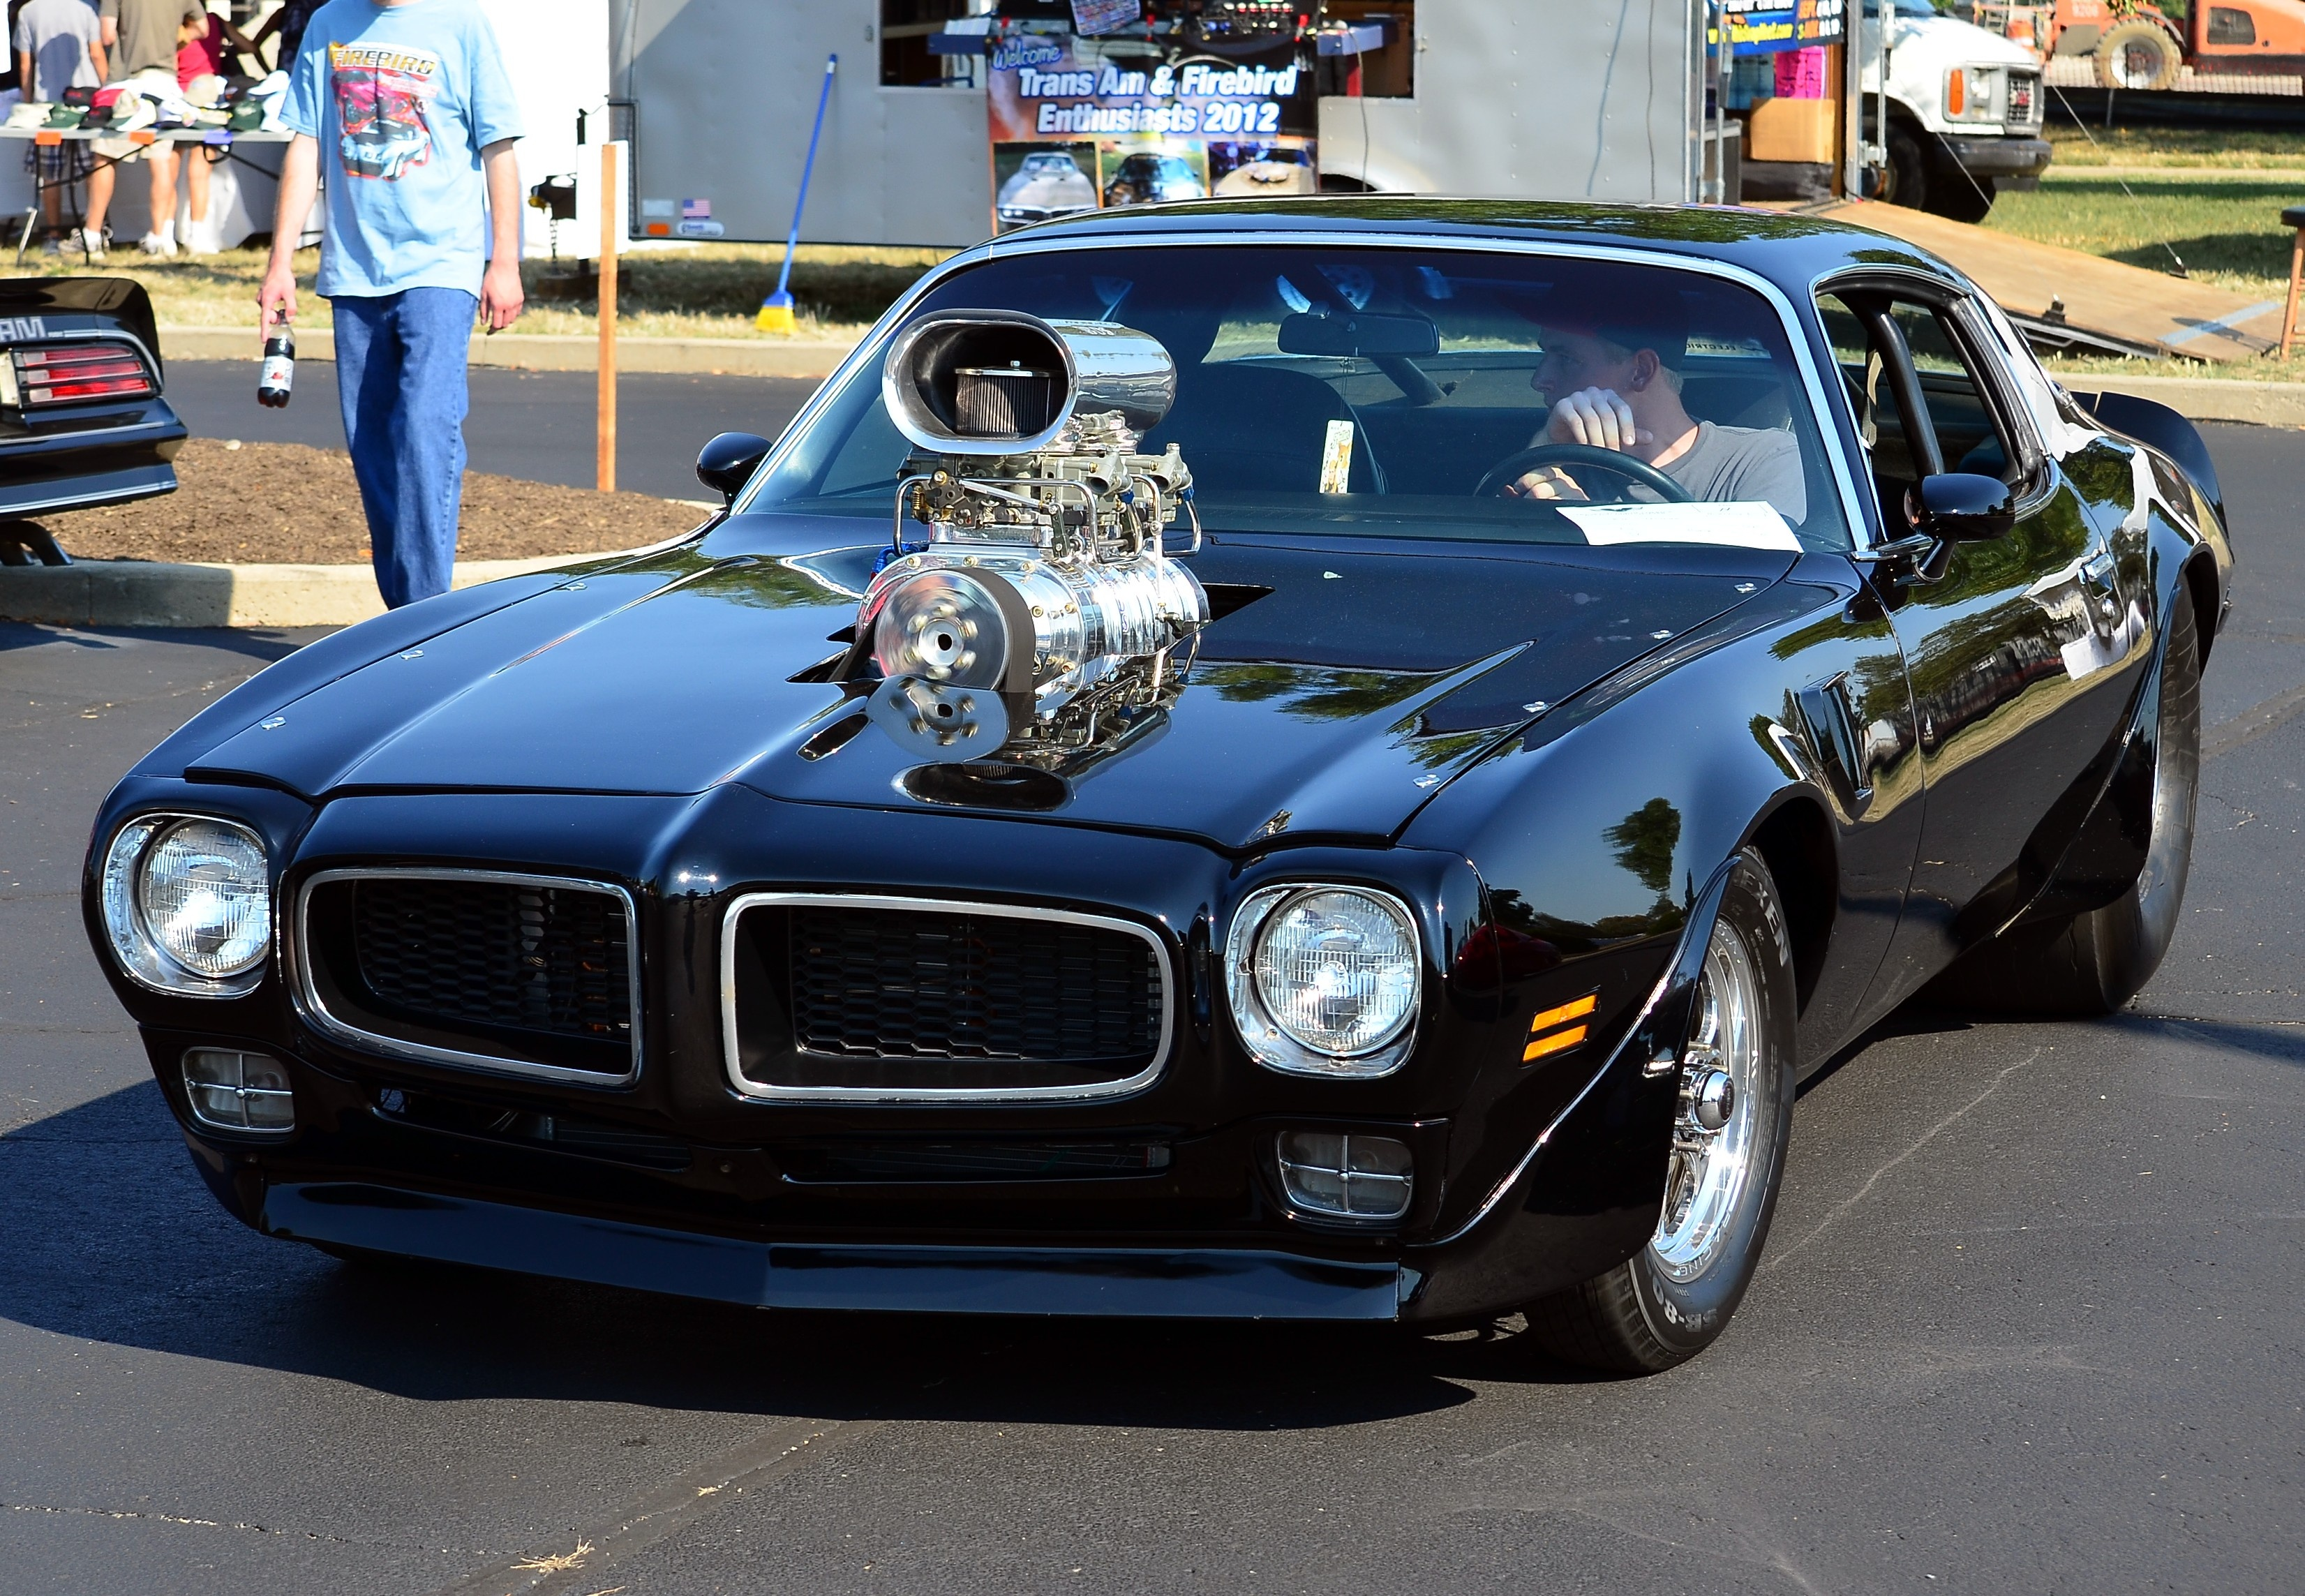 Pontiac Trans Am Tuning Custom Muscle Hot Rod Rods Classic Engine 1973 Specs Engines Wallpaper 3303x2287 126800 Wallpaperup